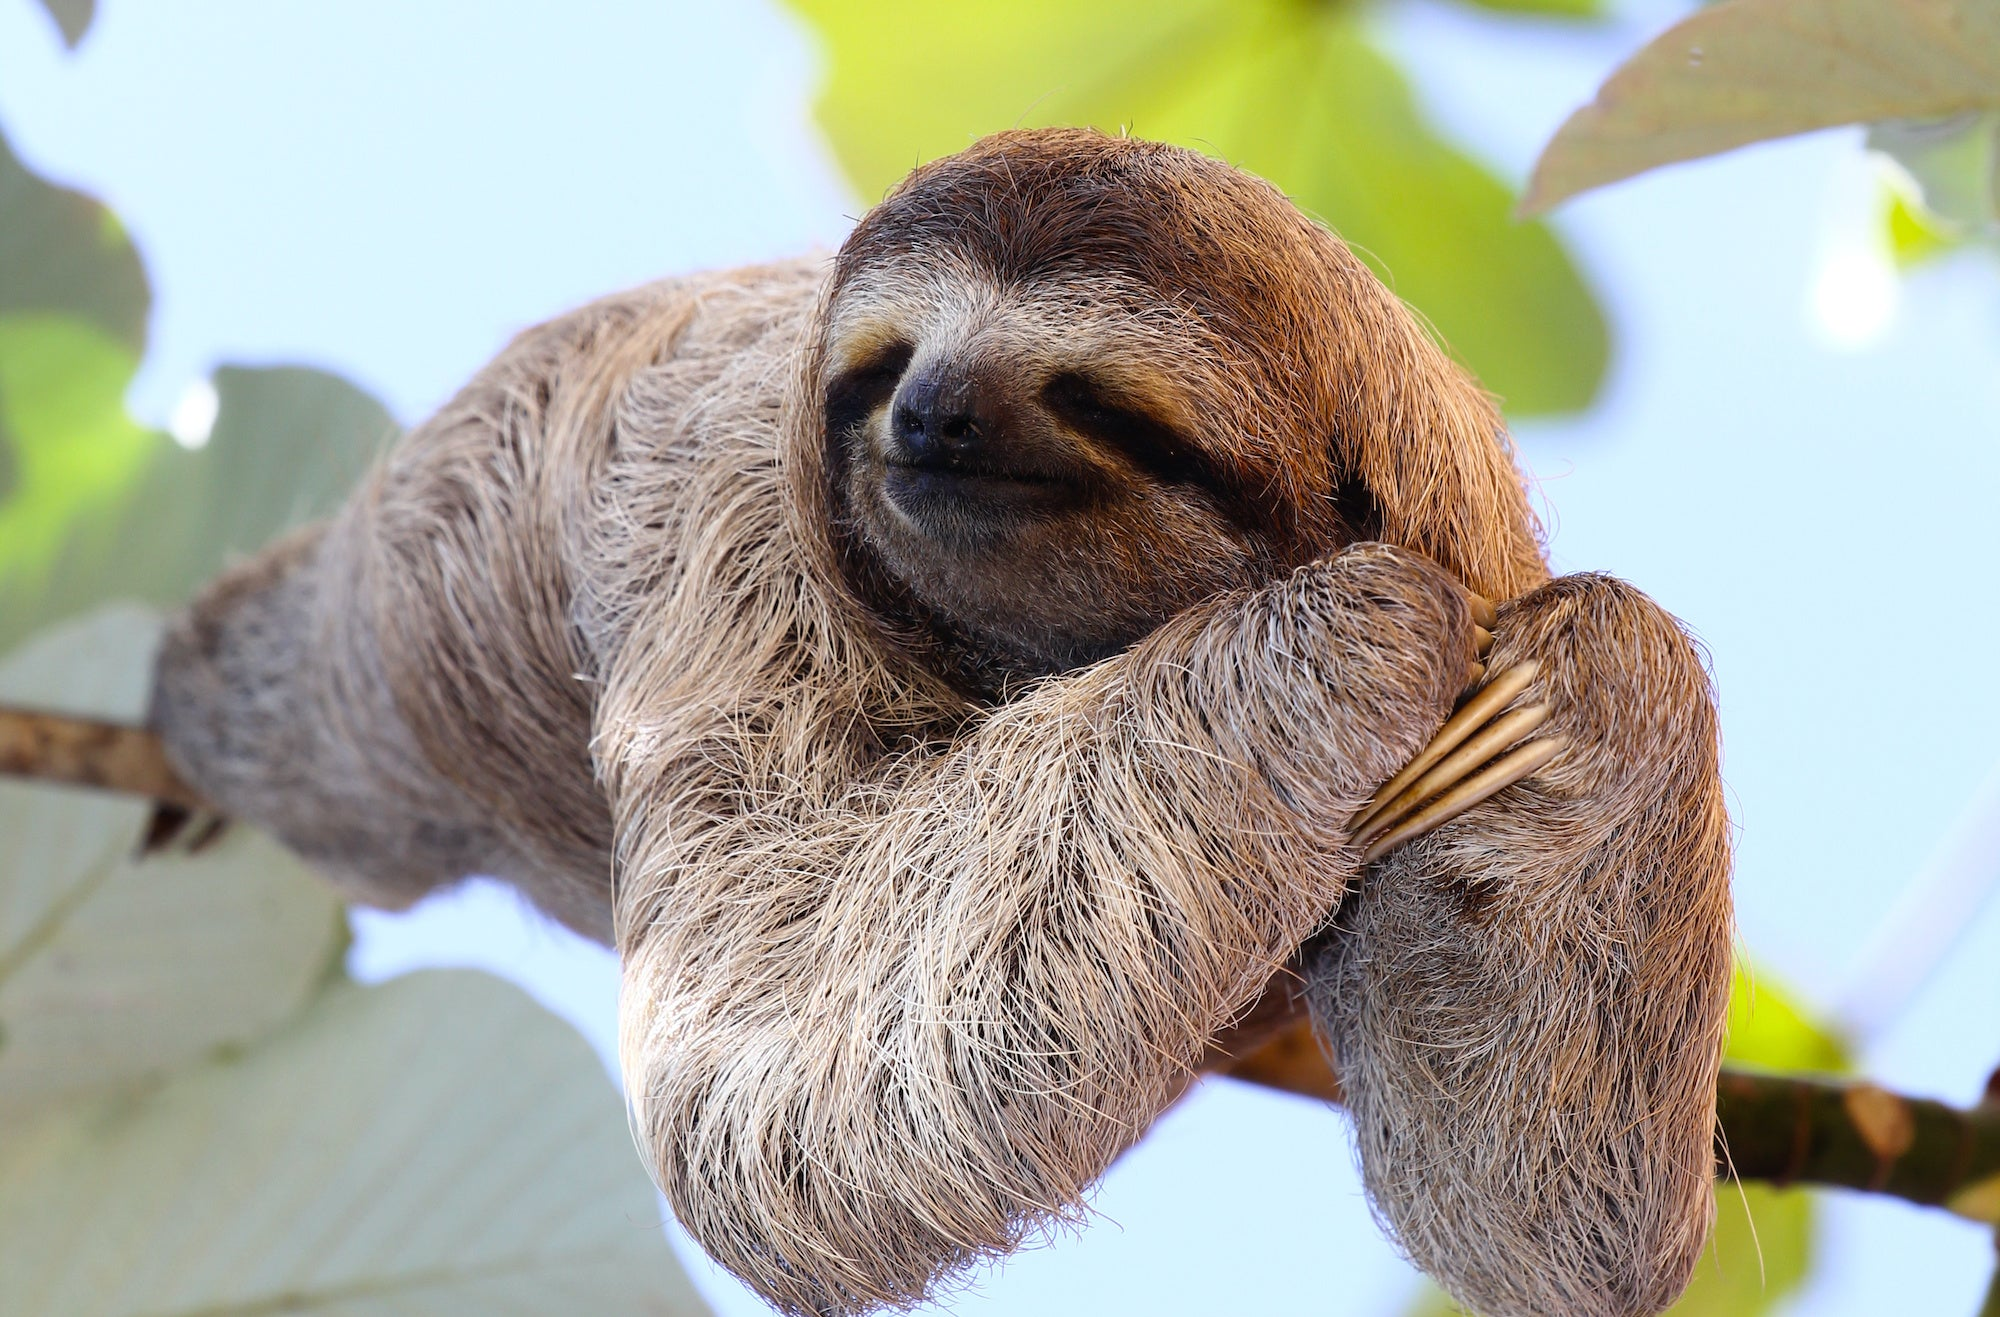 Sloth smiling in rainforest on branch